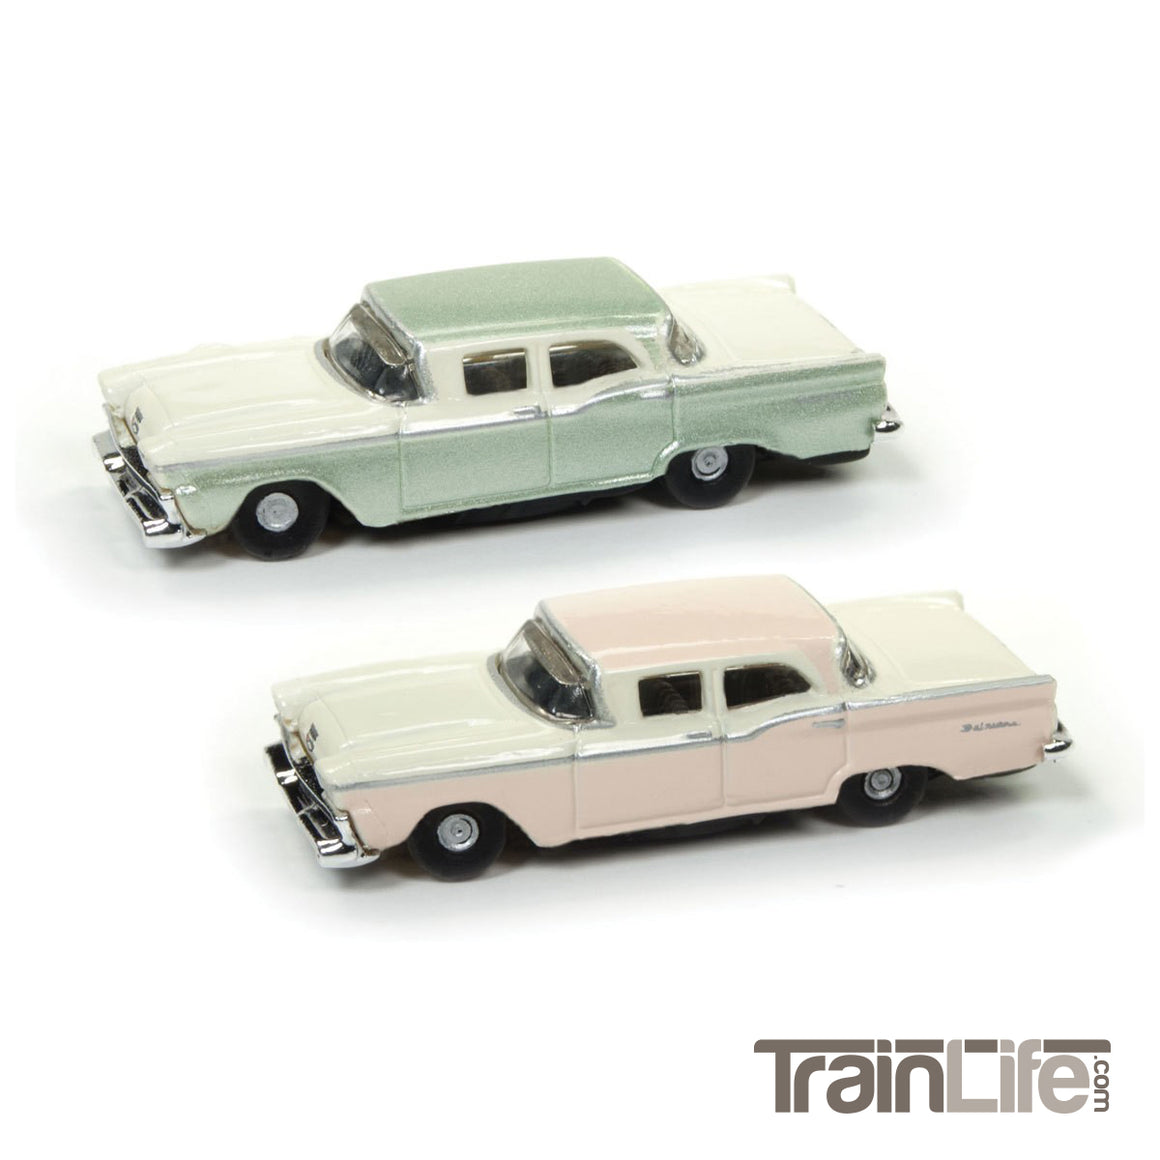 N Scale: 1959 Ford Fairlane Sedan - Bermuda Sand & Sagebrush Green - 2 Pack